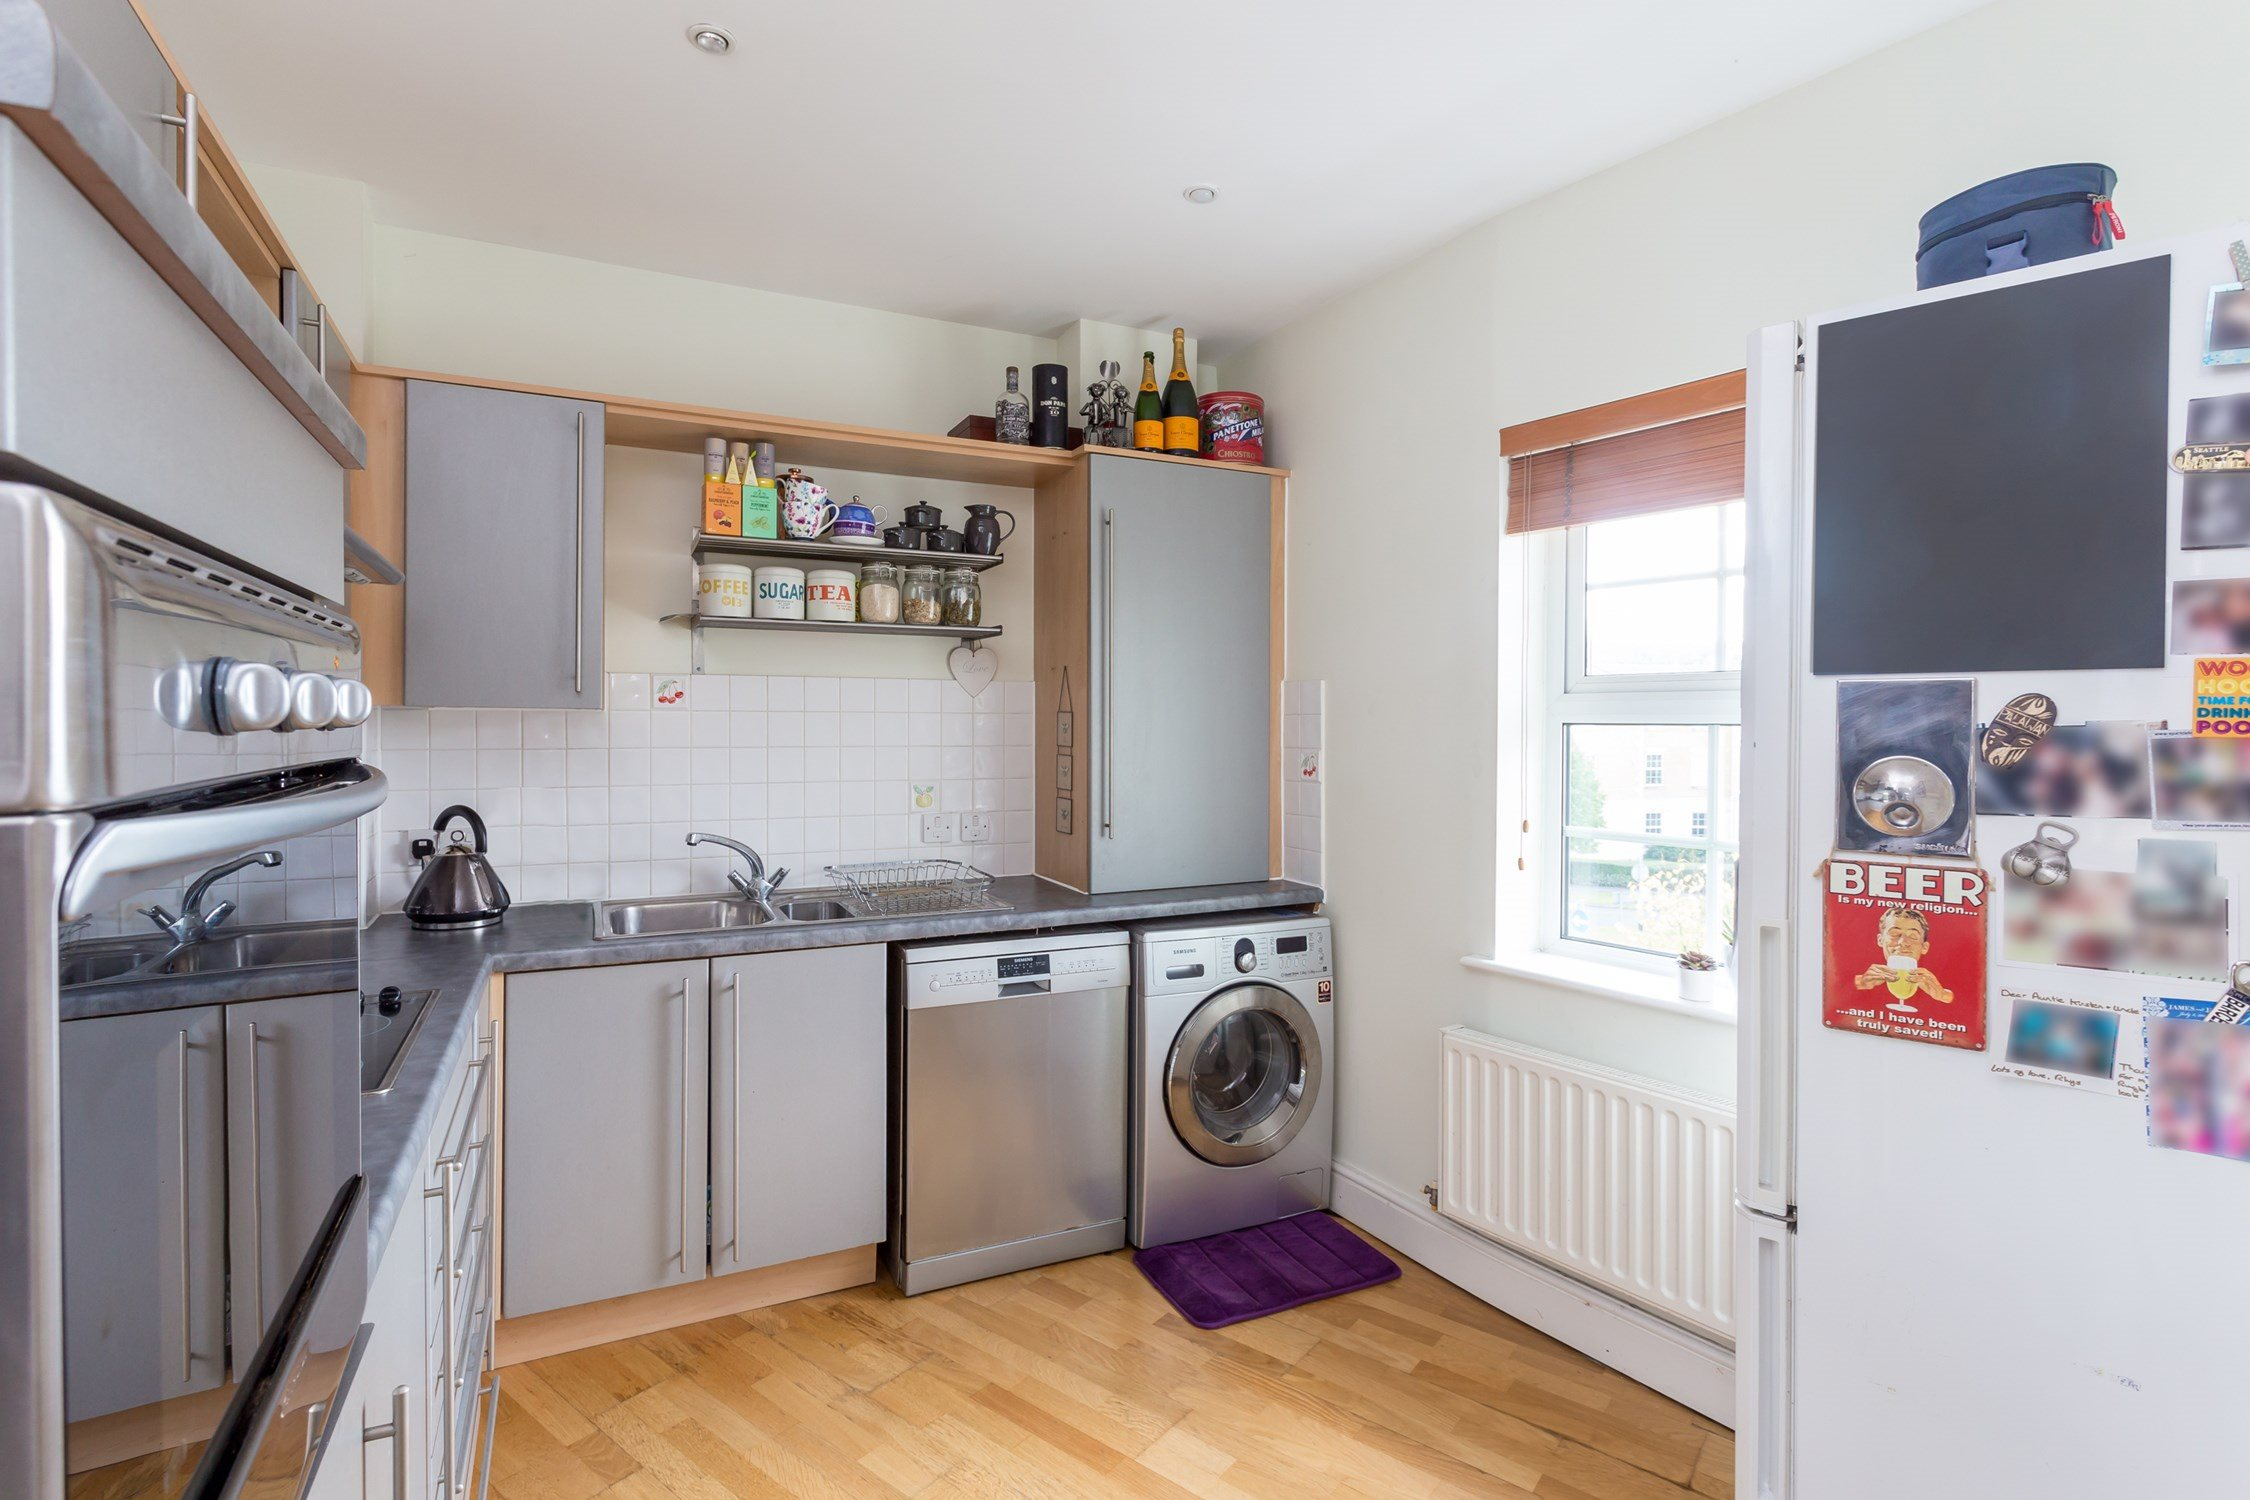 Abbey kitchens and bathrooms - 2 Bedrooms 2 Bathrooms Kendall Road Waltham Abbey En9